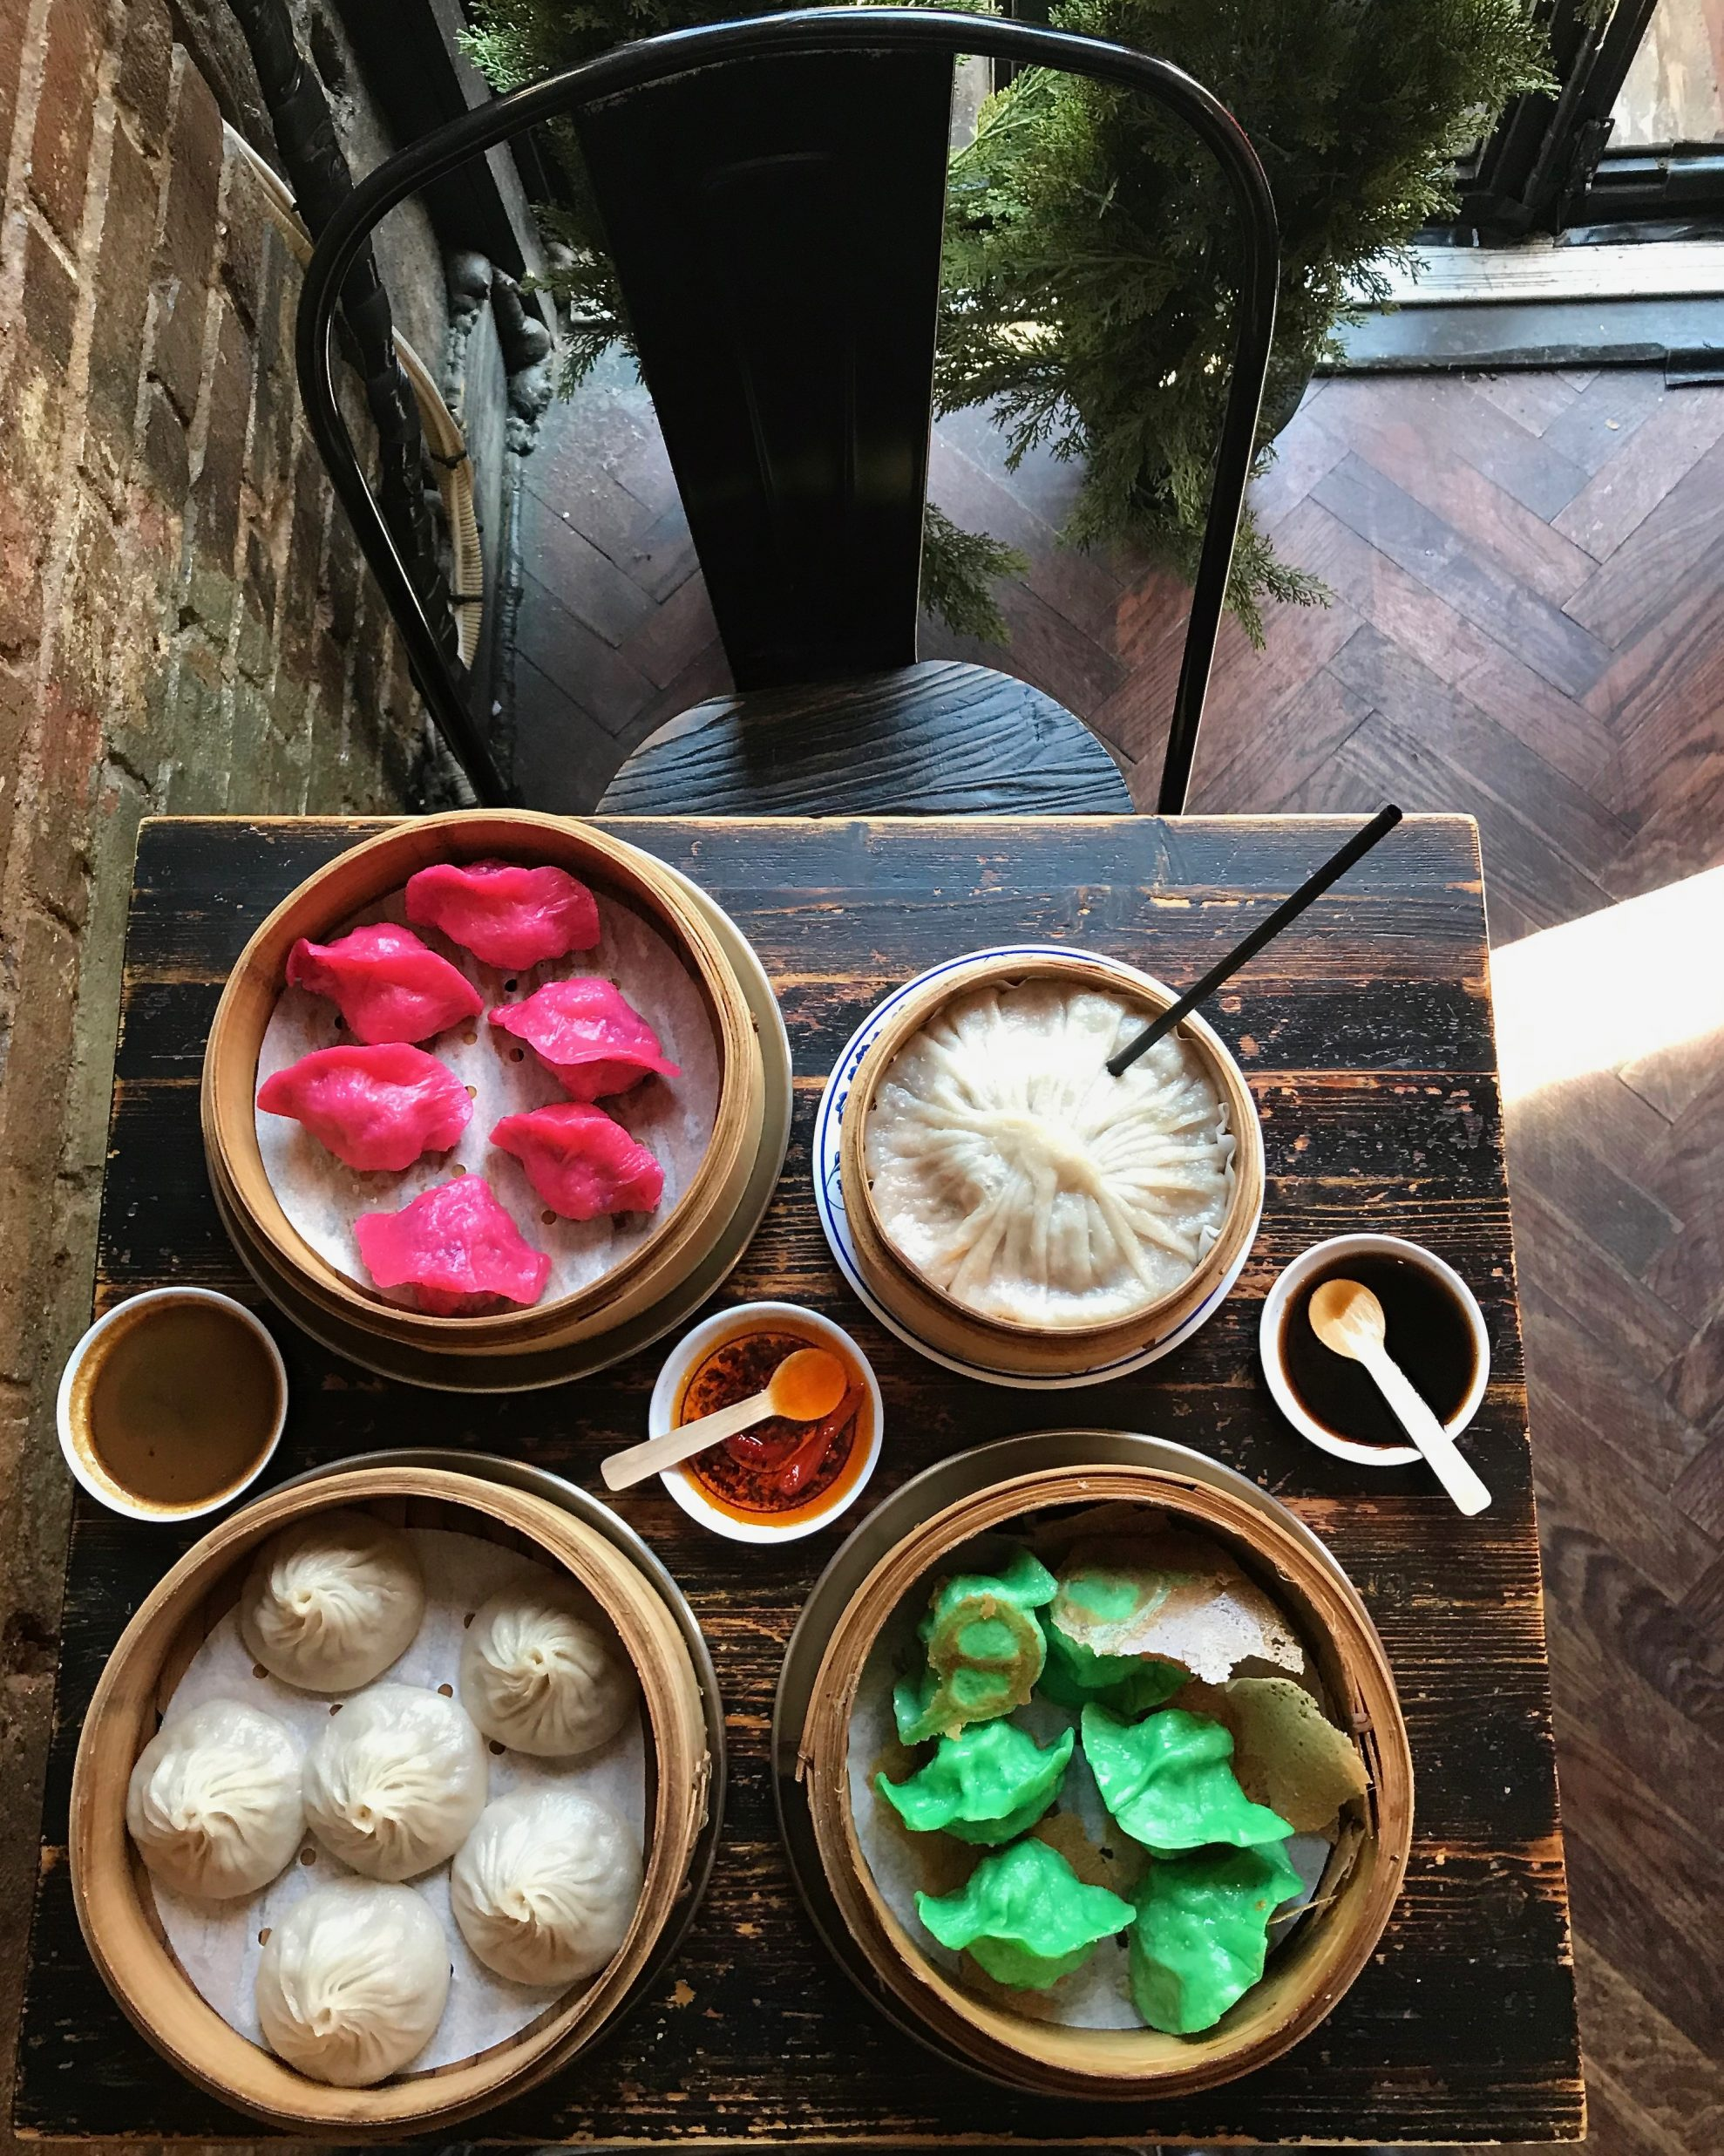 Where To Get The Best Dumplings In NYC